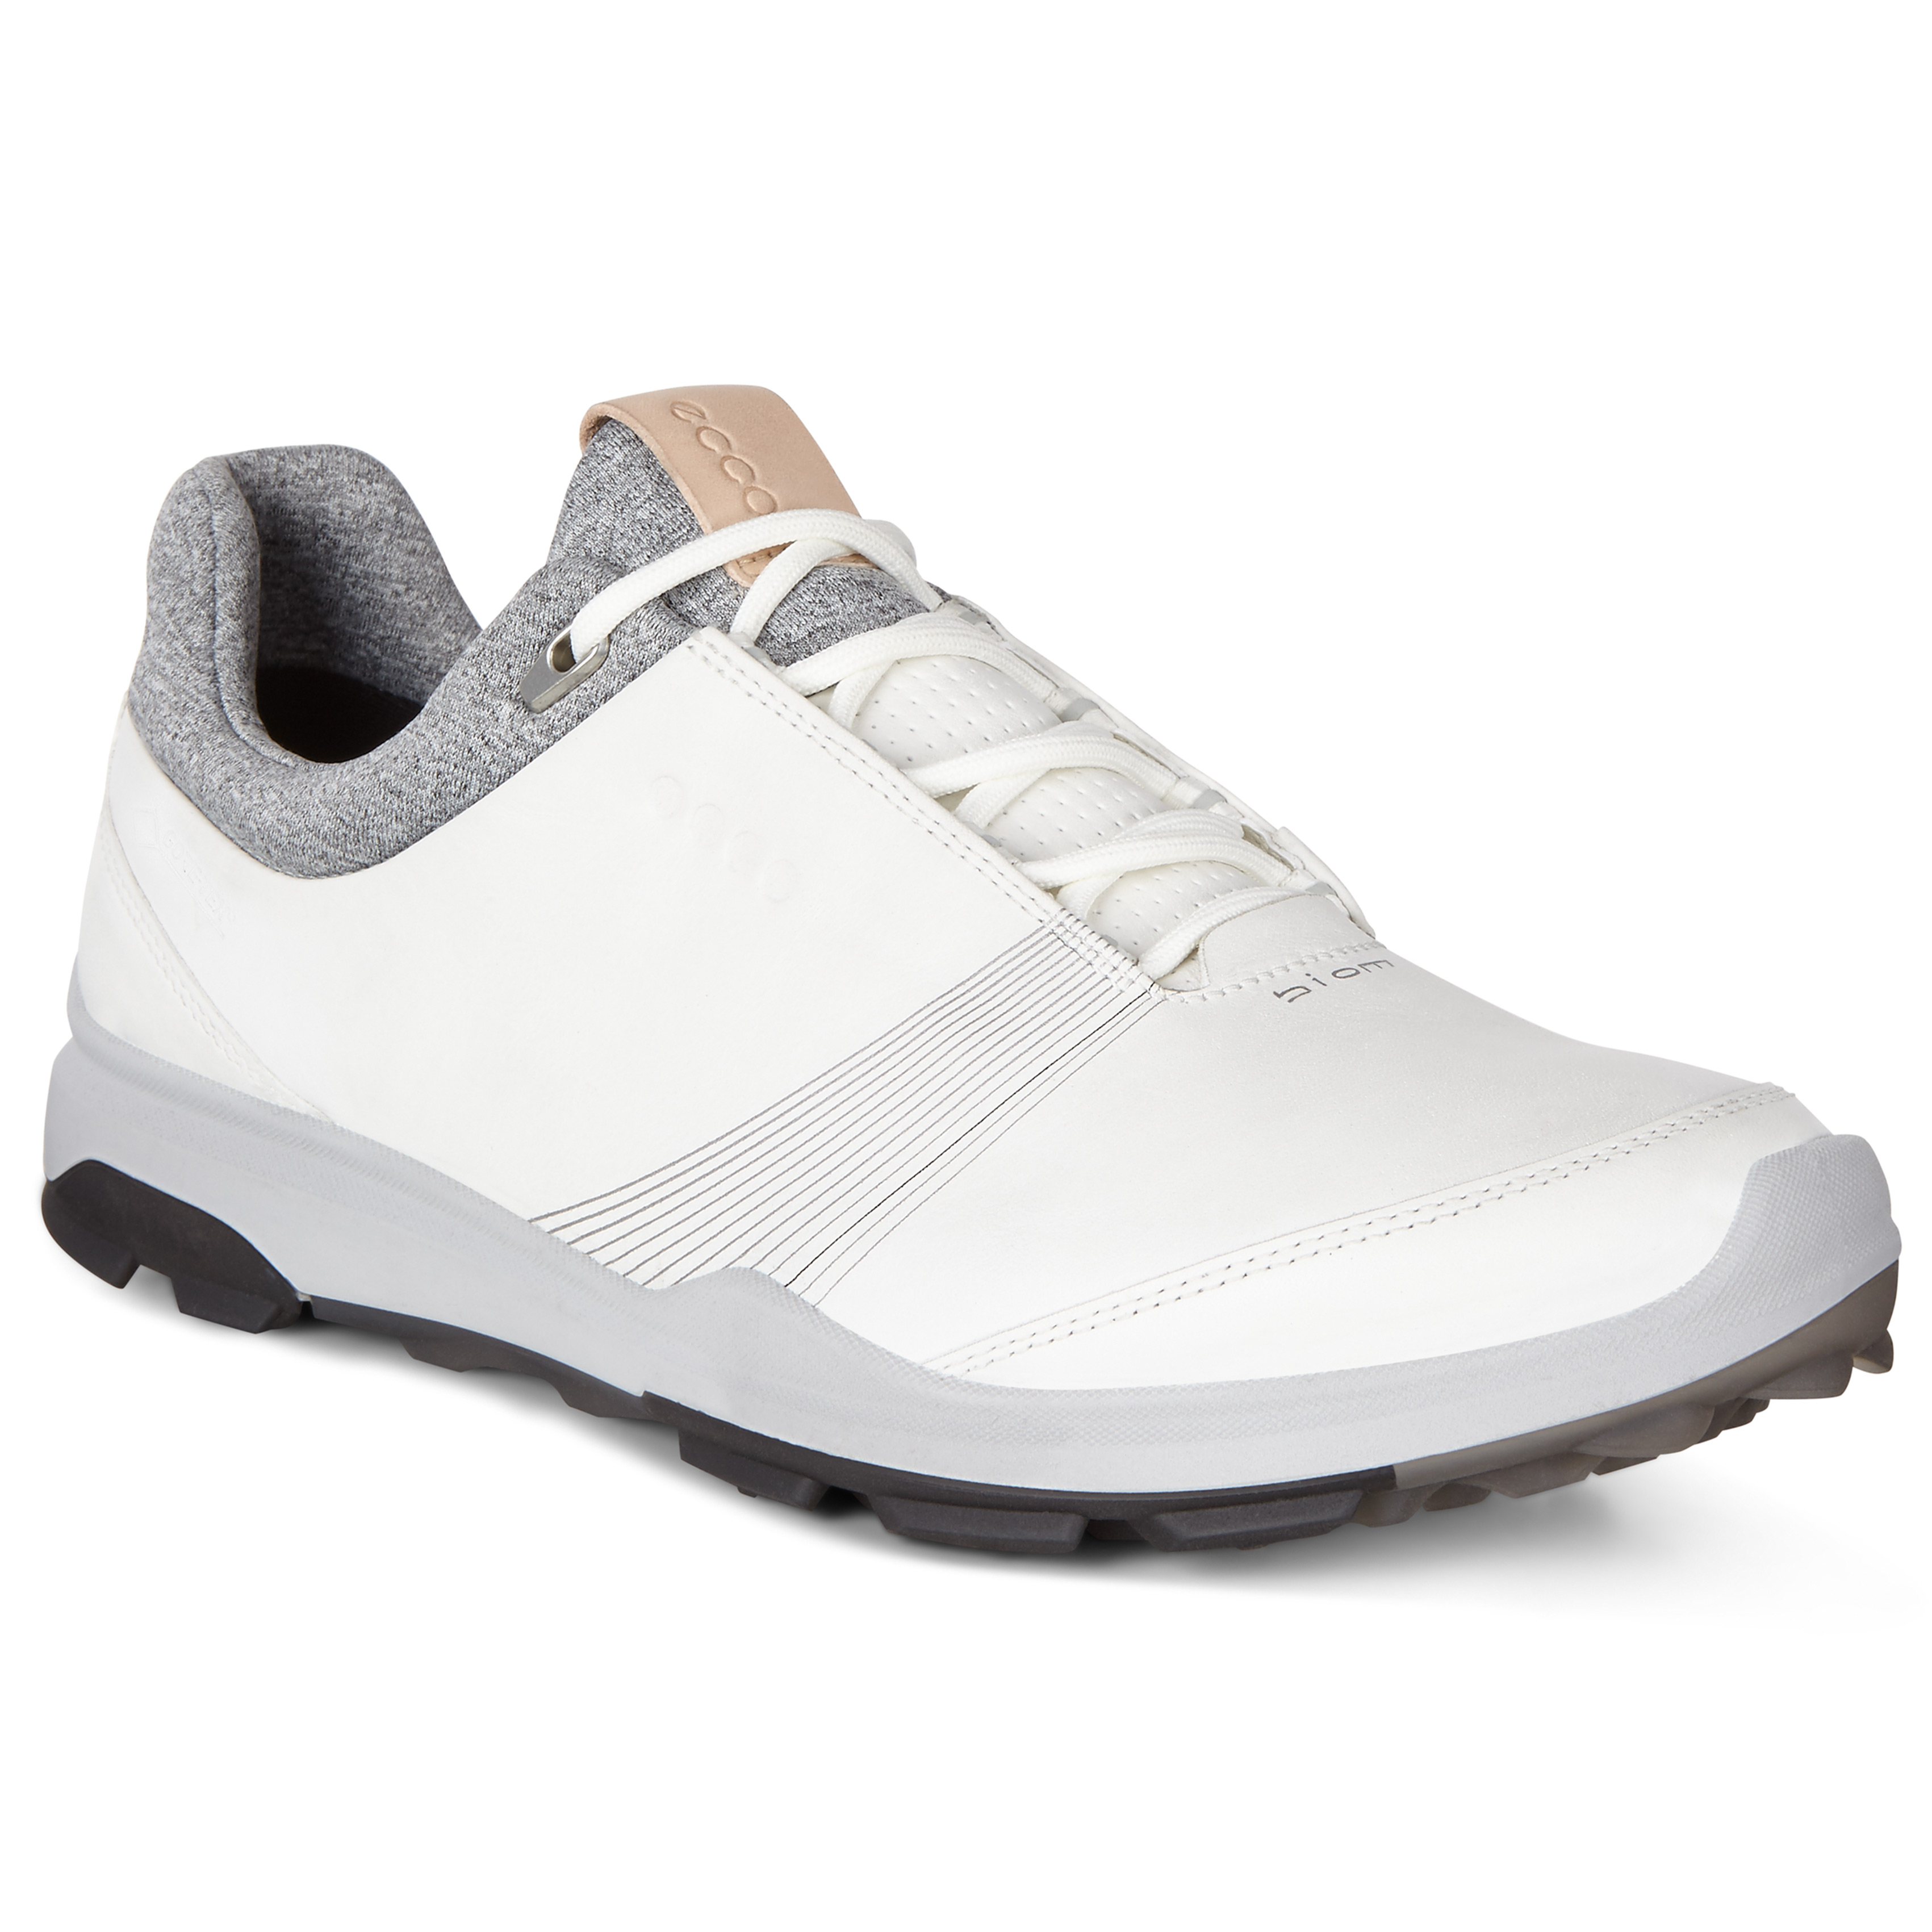 618698f3ee4d ECCO Womens 2018 Biom Hybrid 3 Gore Tex Waterproof Golf Shoes UK 9 ...